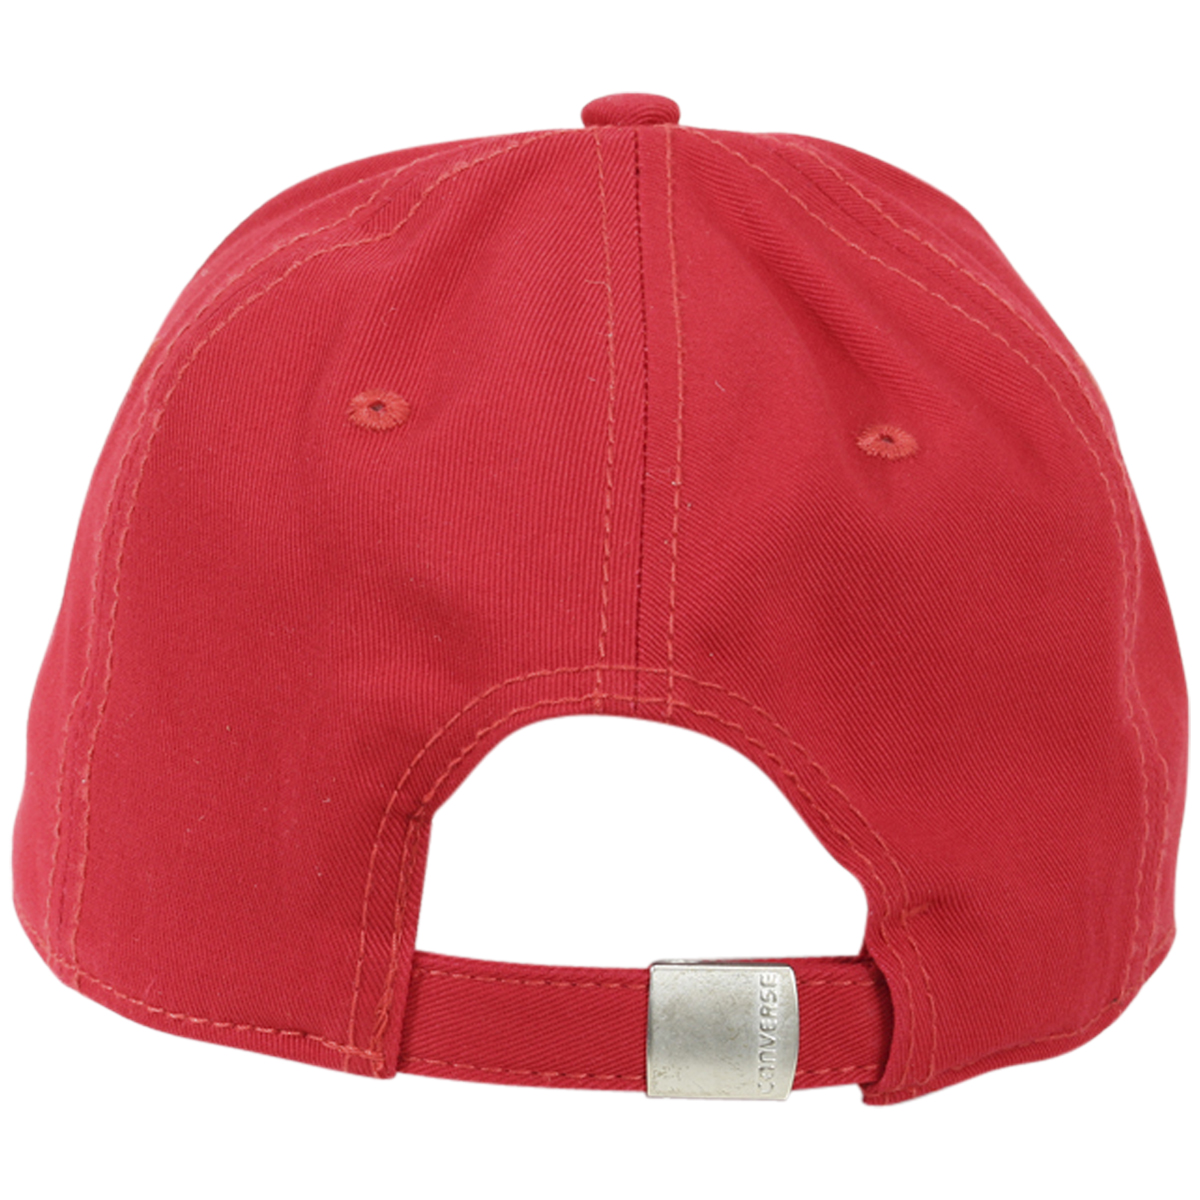 309511f9f57 Converse Adjustable Cotton Cap Baseball Hat (One Size Fits Most)